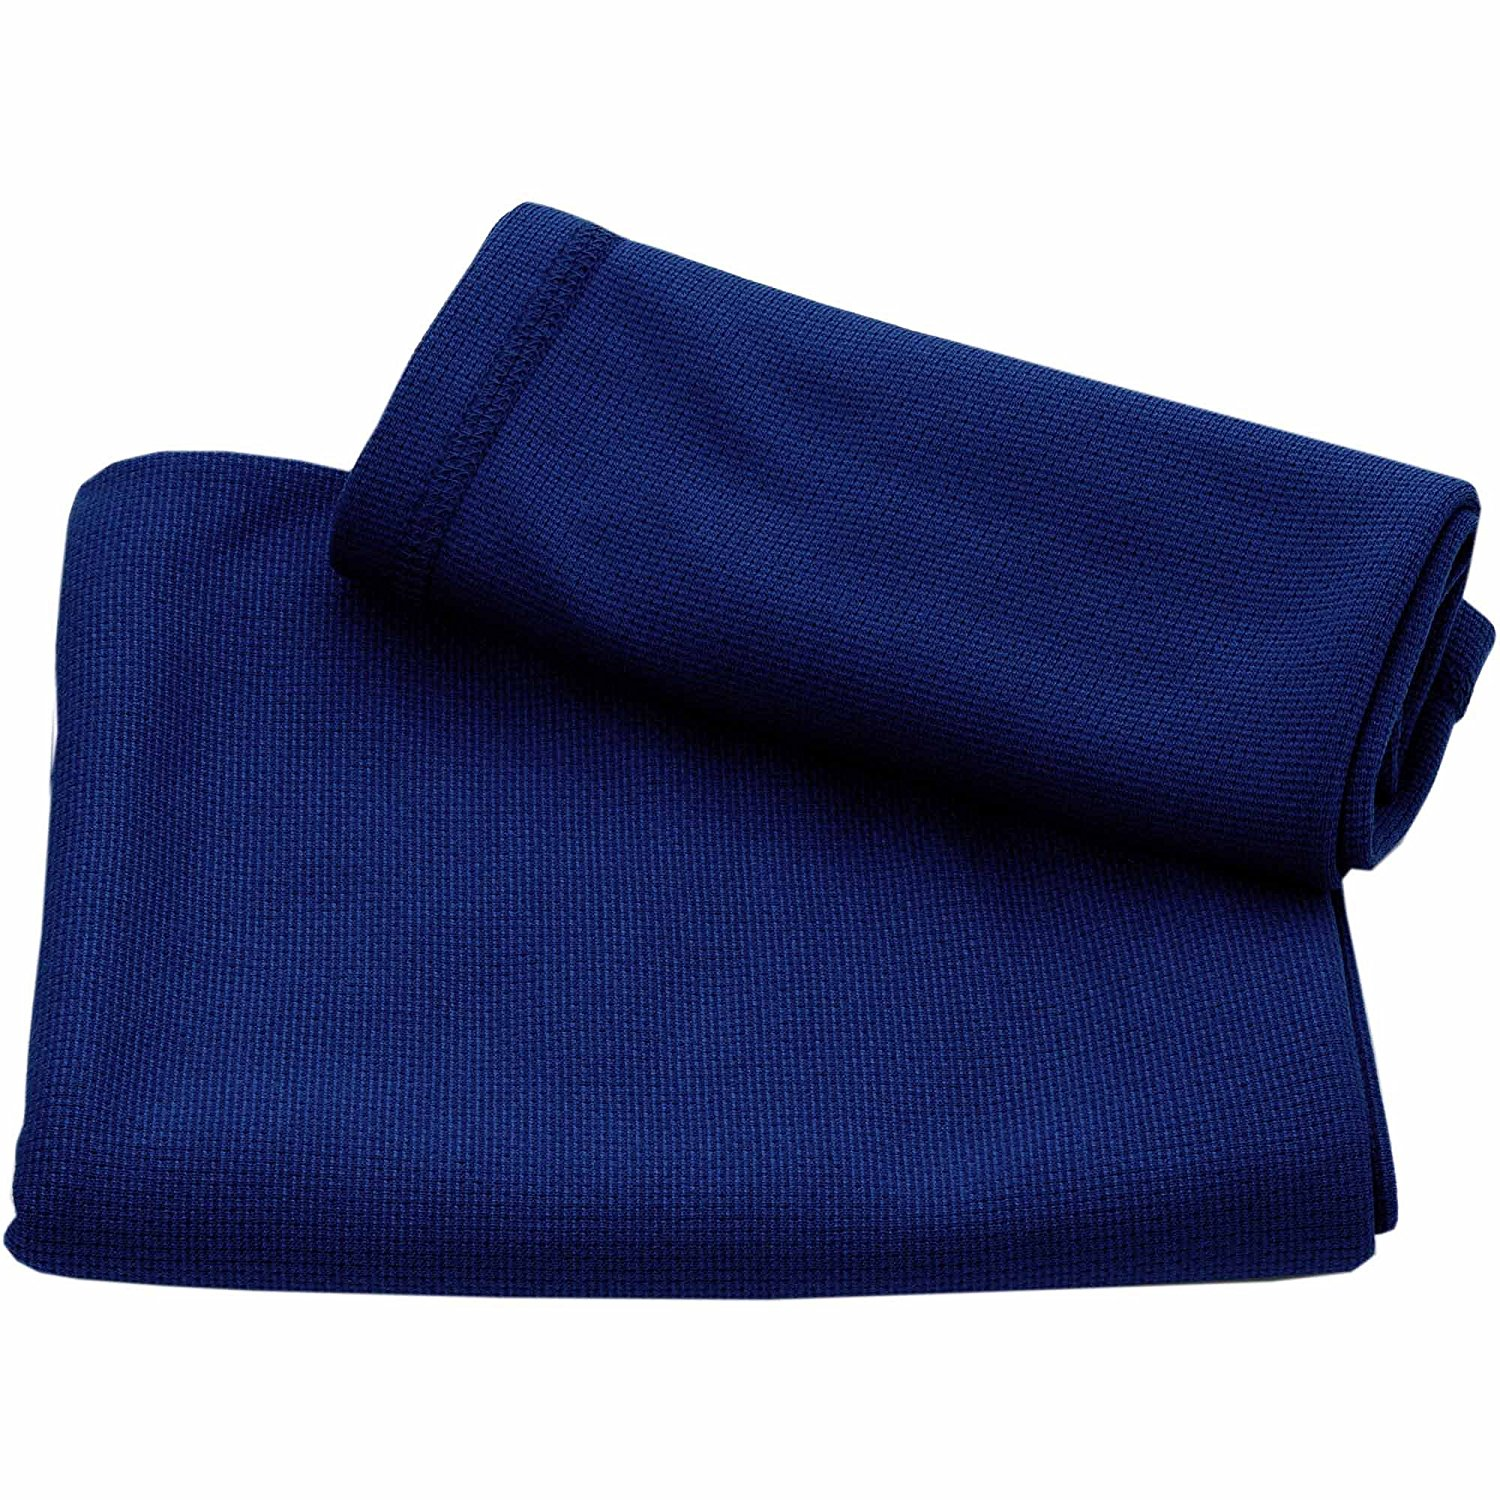 Compact Quick Dry Lightweight Antibacterial Towels High Tech Better Than Microfiber 8 Colors Discovery Ultra Fast Dry Travel and Sports Towel